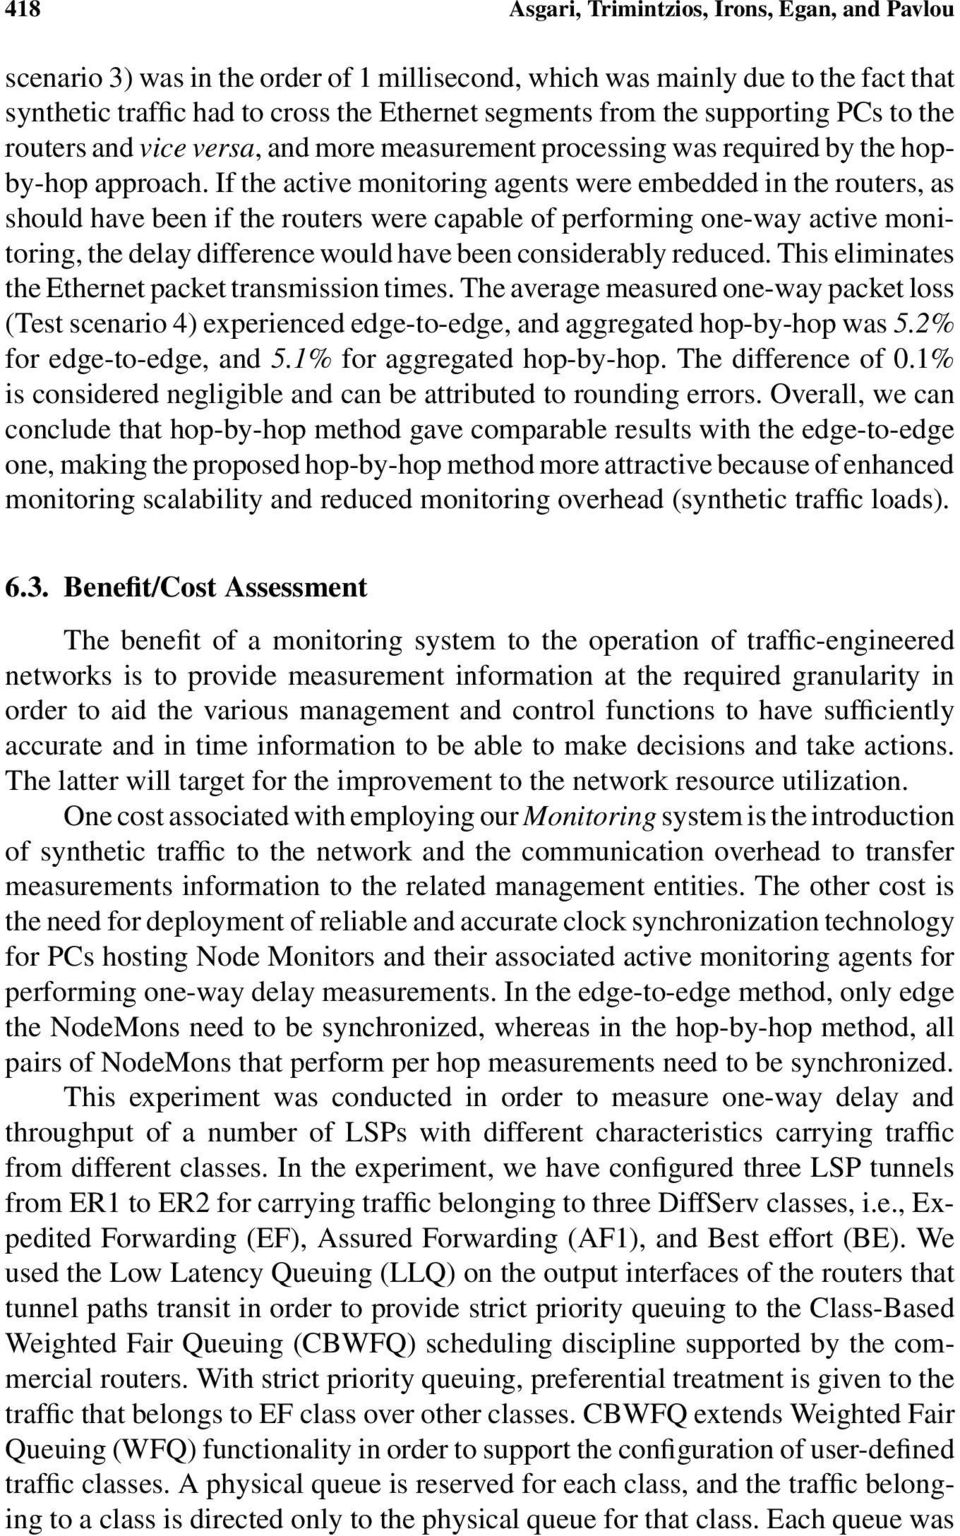 If the active monitoring agents were embedded in the routers, as should have been if the routers were capable of performing one-way active monitoring, the delay difference would have been